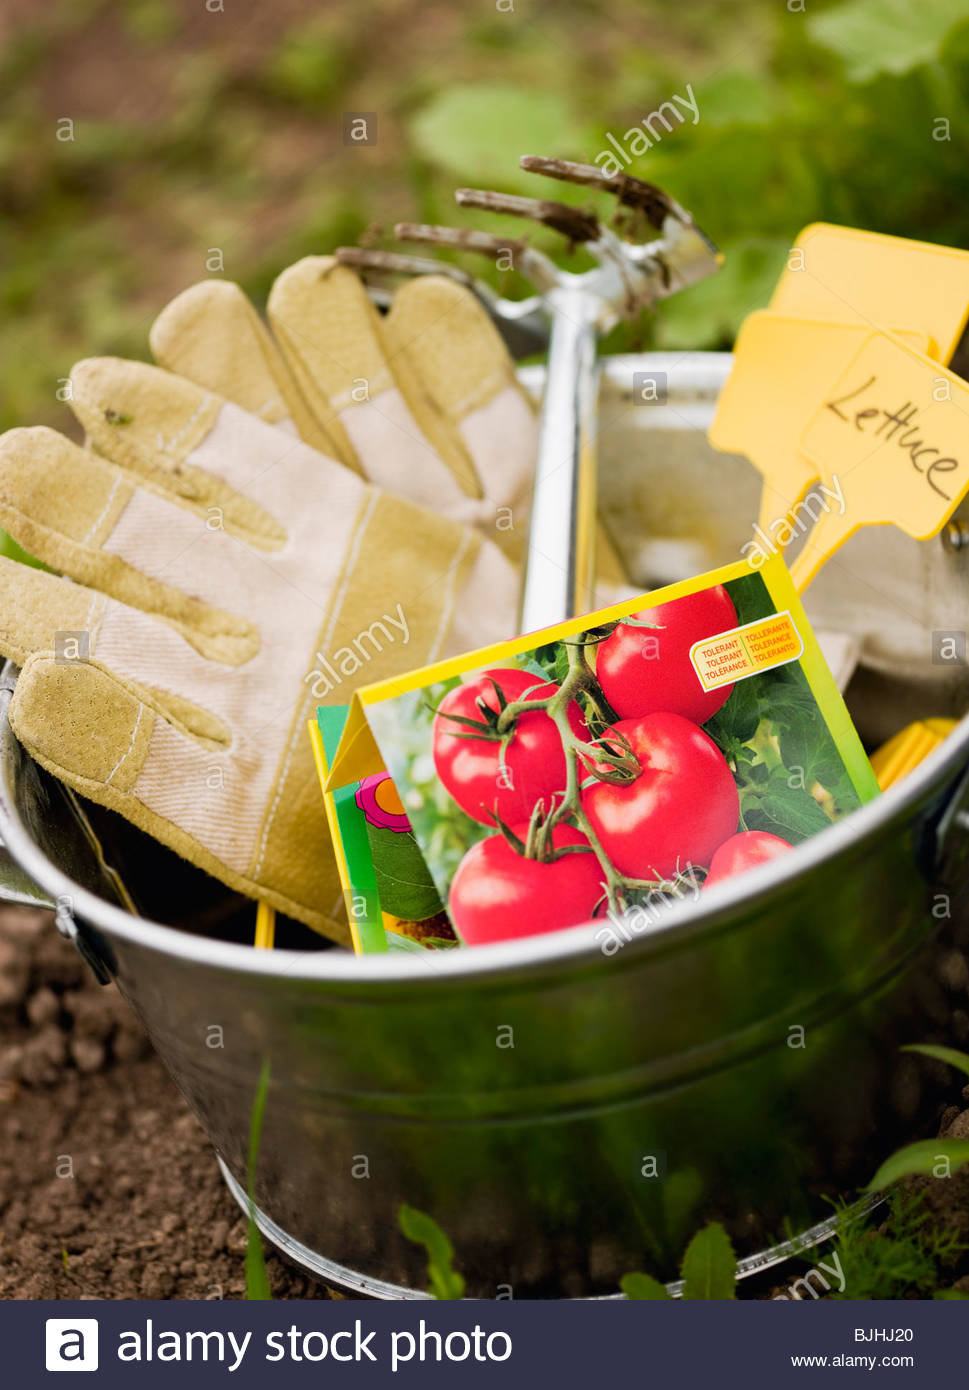 Garden tool, tomato seeds and labels in metal bucket - Stock Image